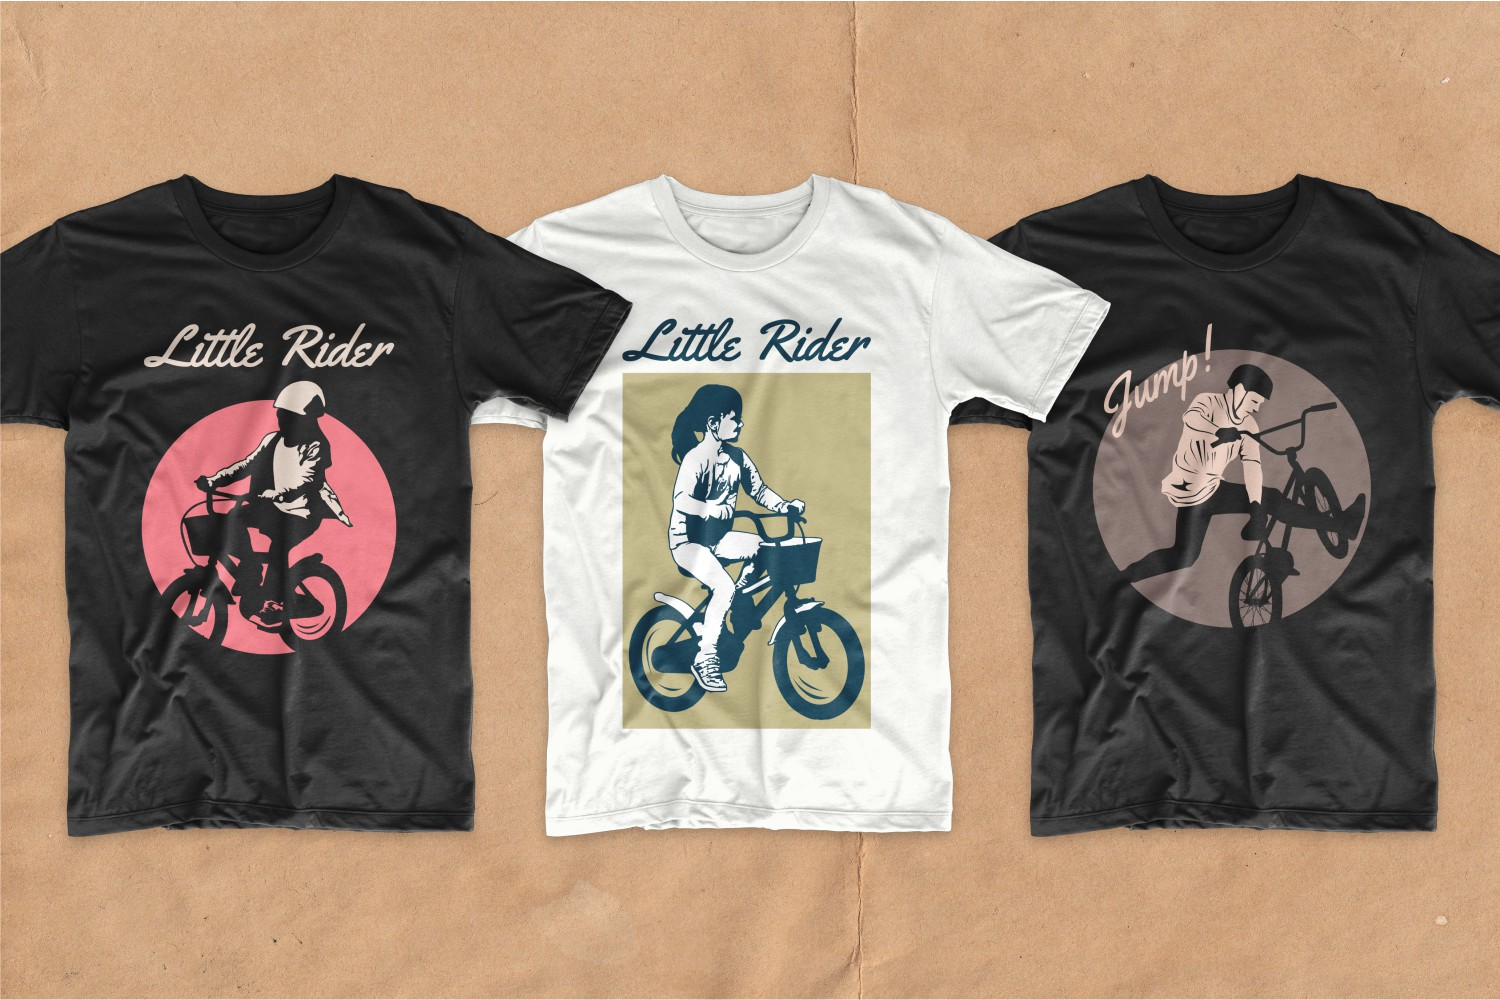 T-shirts with children on bicycles.